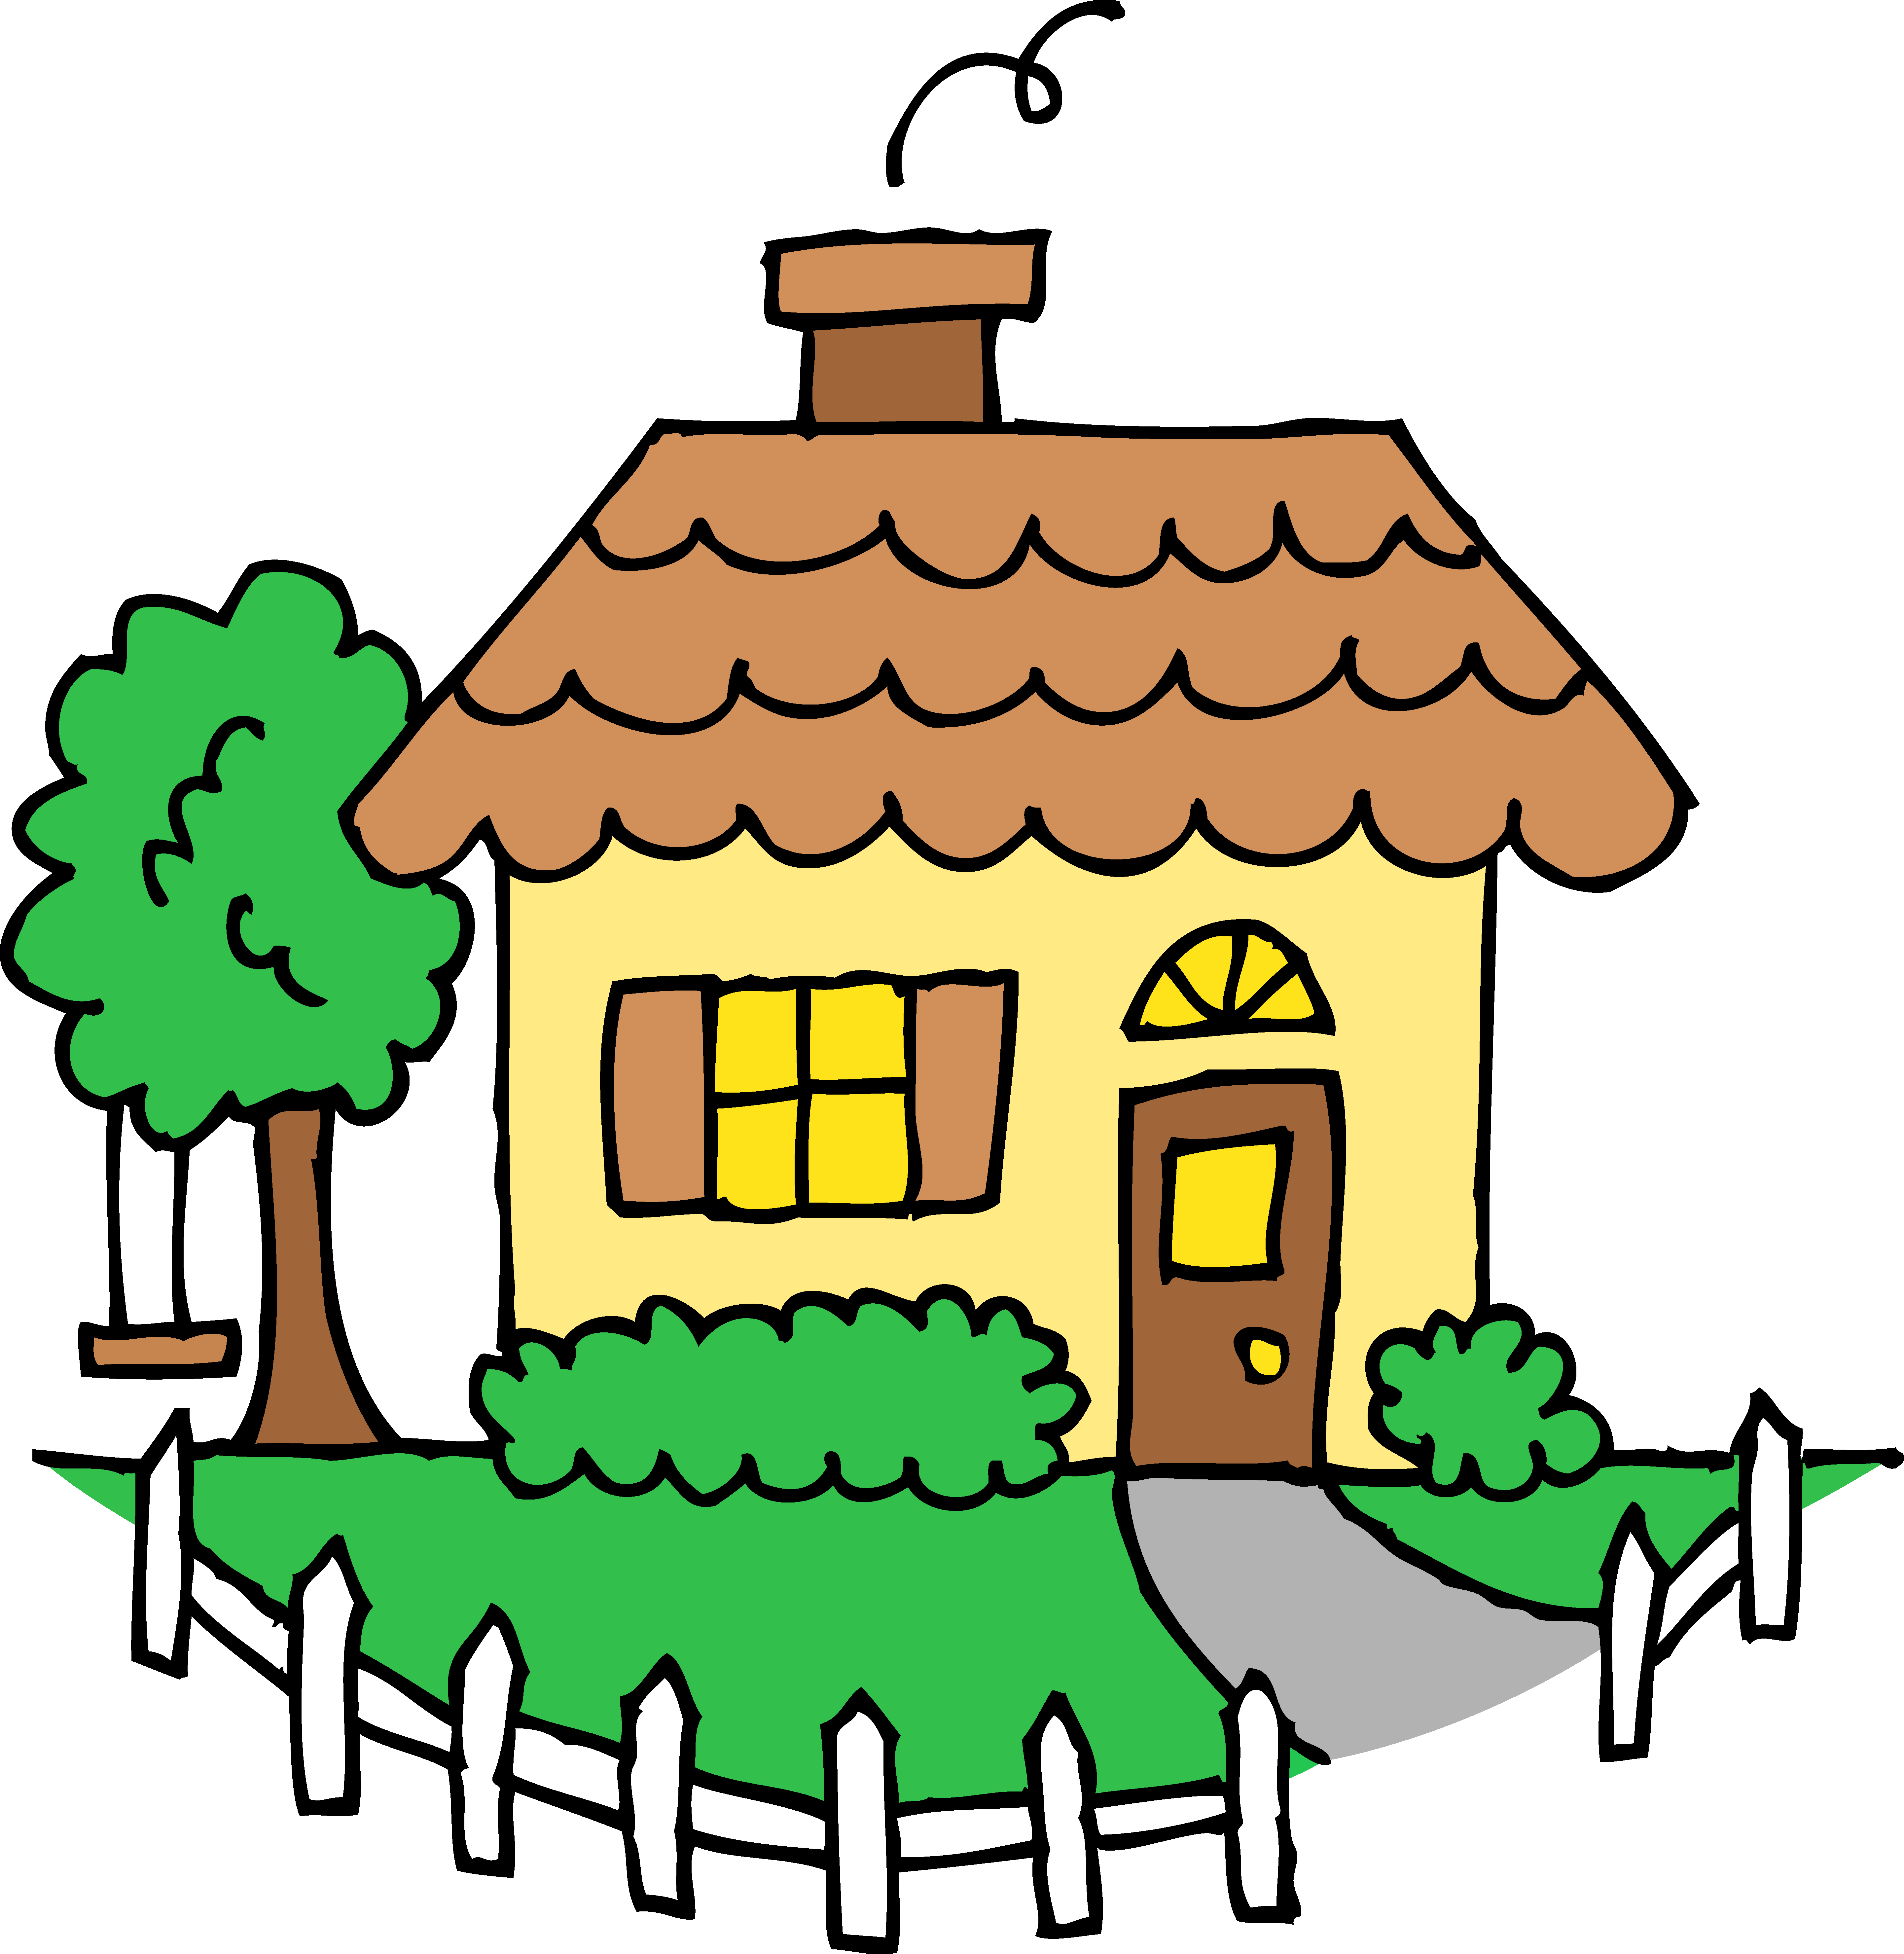 Our house clipart Transparent pictures on F.